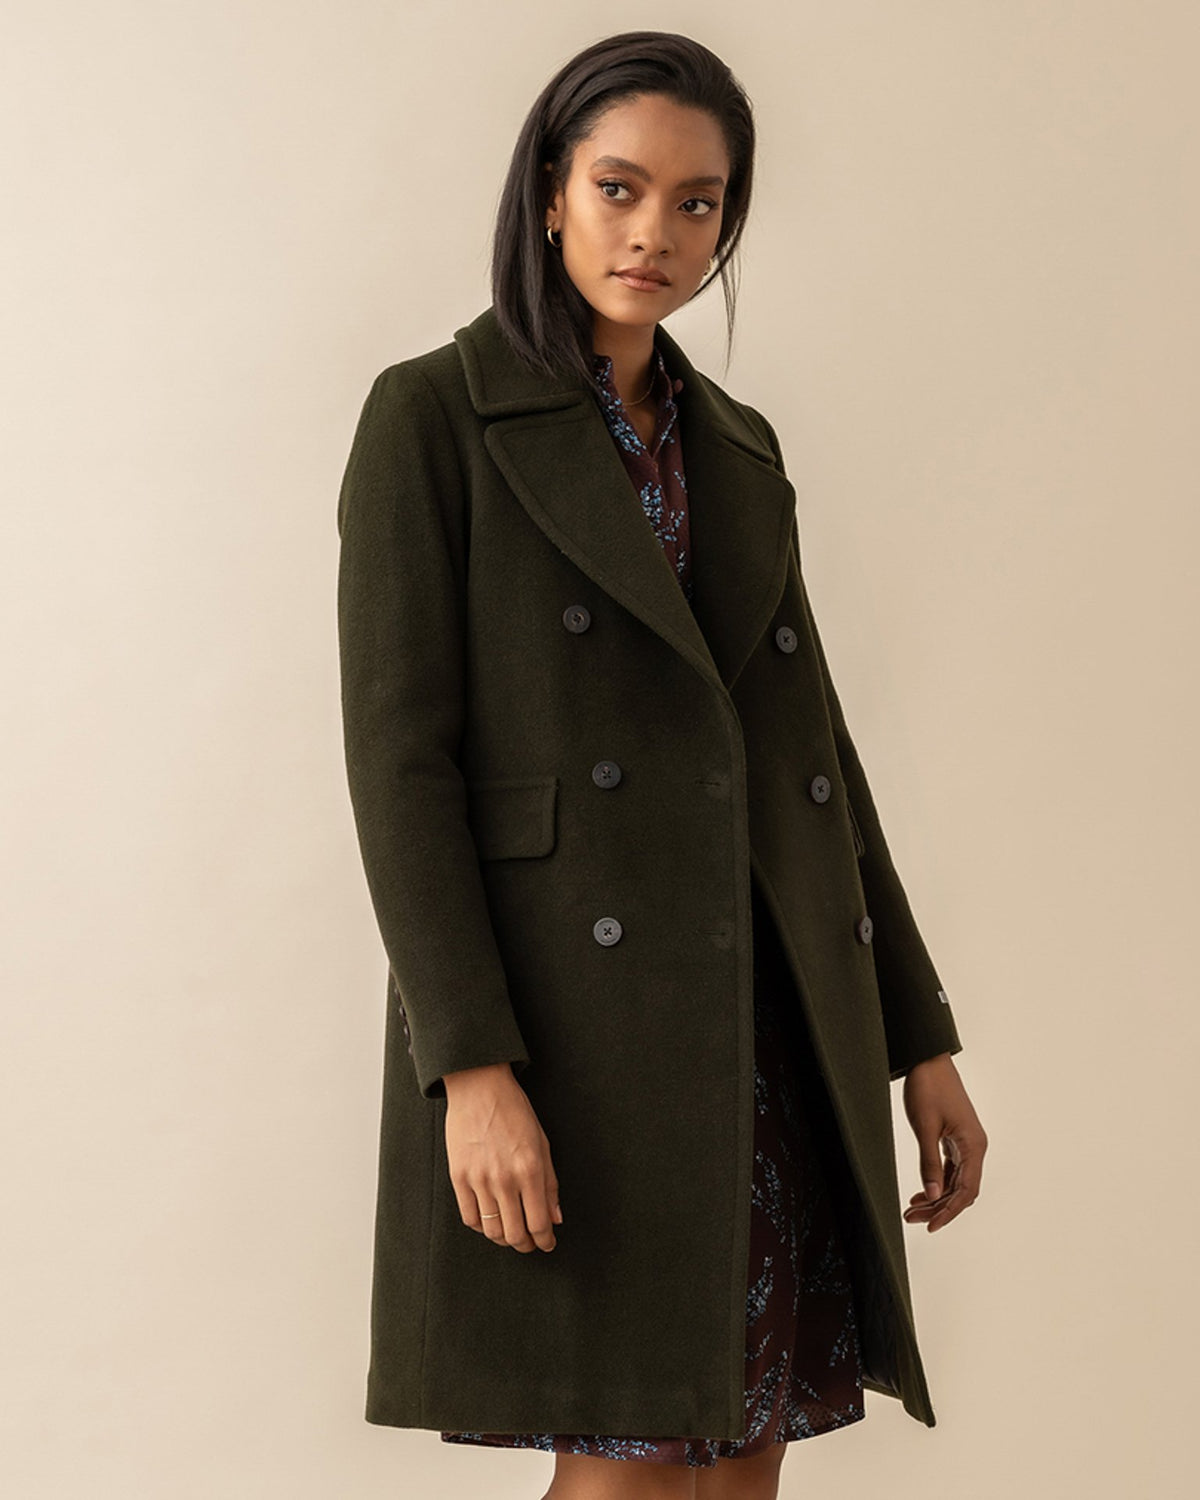 Soia & Kyo Outerwear Evette Wool Coat in Army